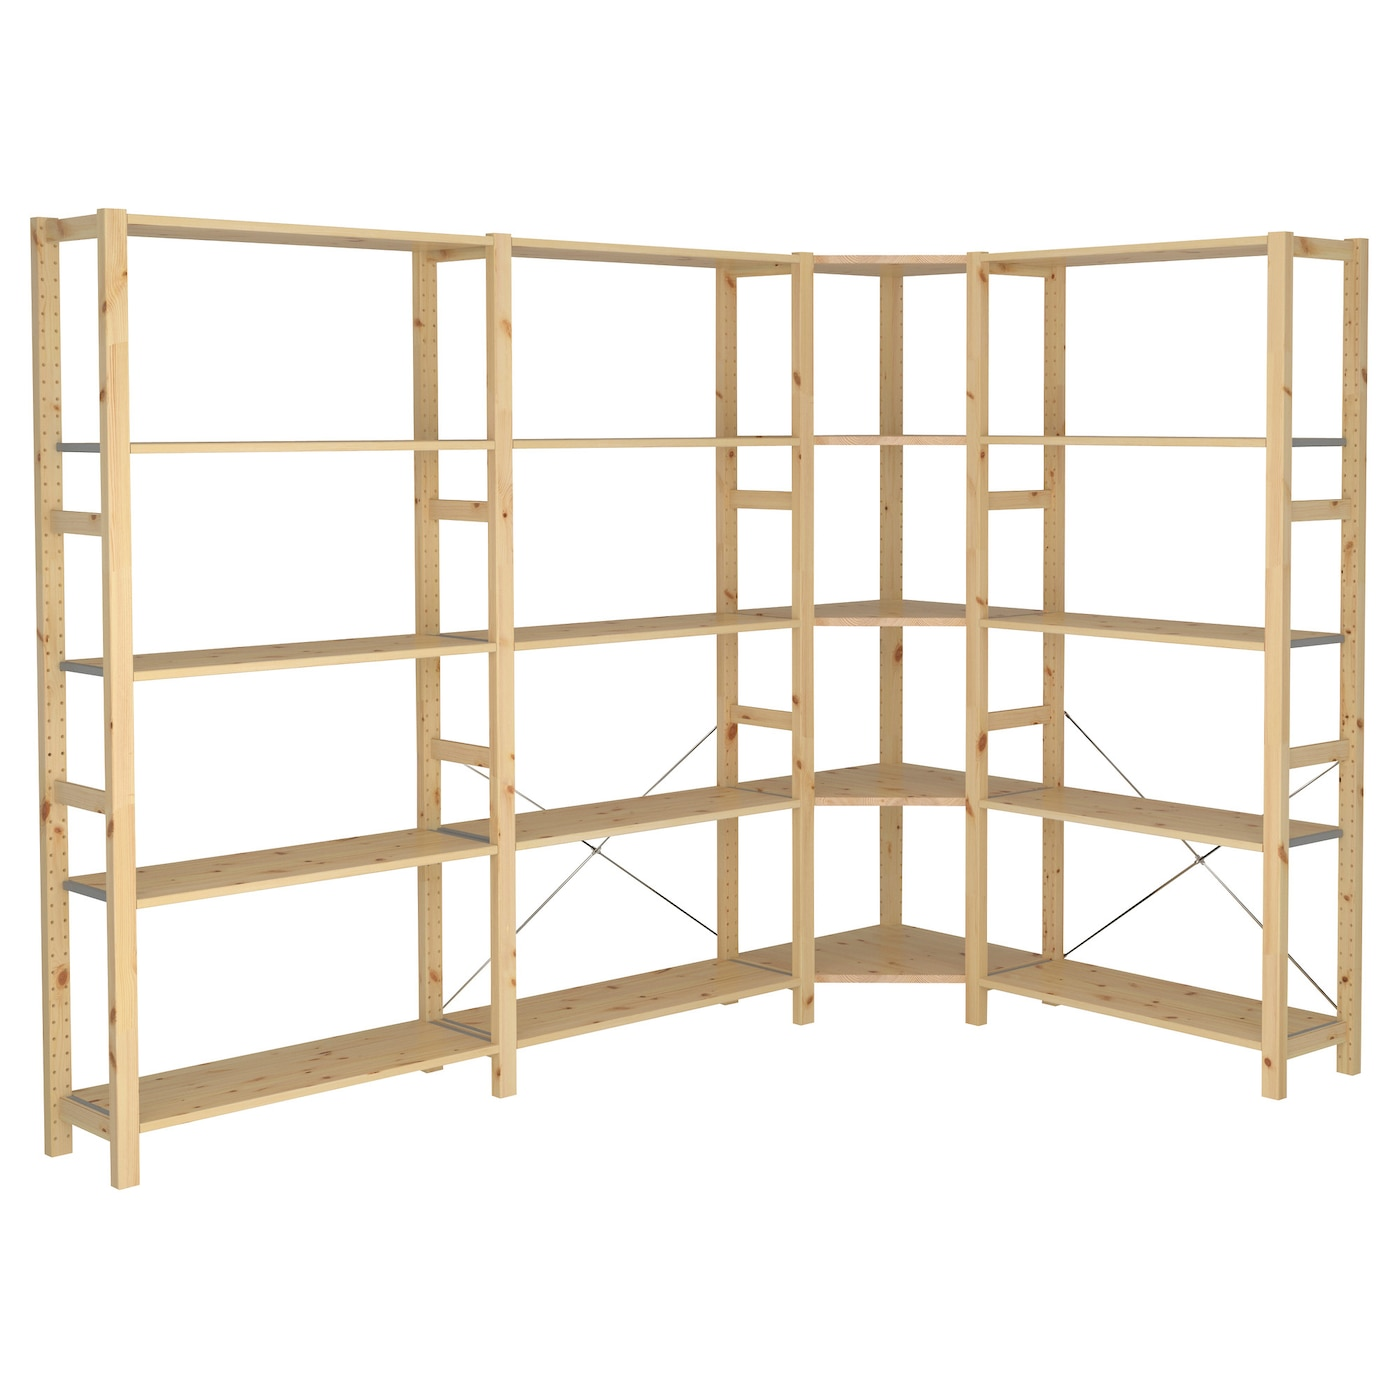 ikea ivar with Ivar 4 Sections Corner Pine Spr 39893527 on Kallax Shelving Unit White Art 00275848 besides Watch besides Armarios Vestidores Y Closets Para Guardar Ropa also Top 10 Ikea Hacks Of 2017 also S19031431.